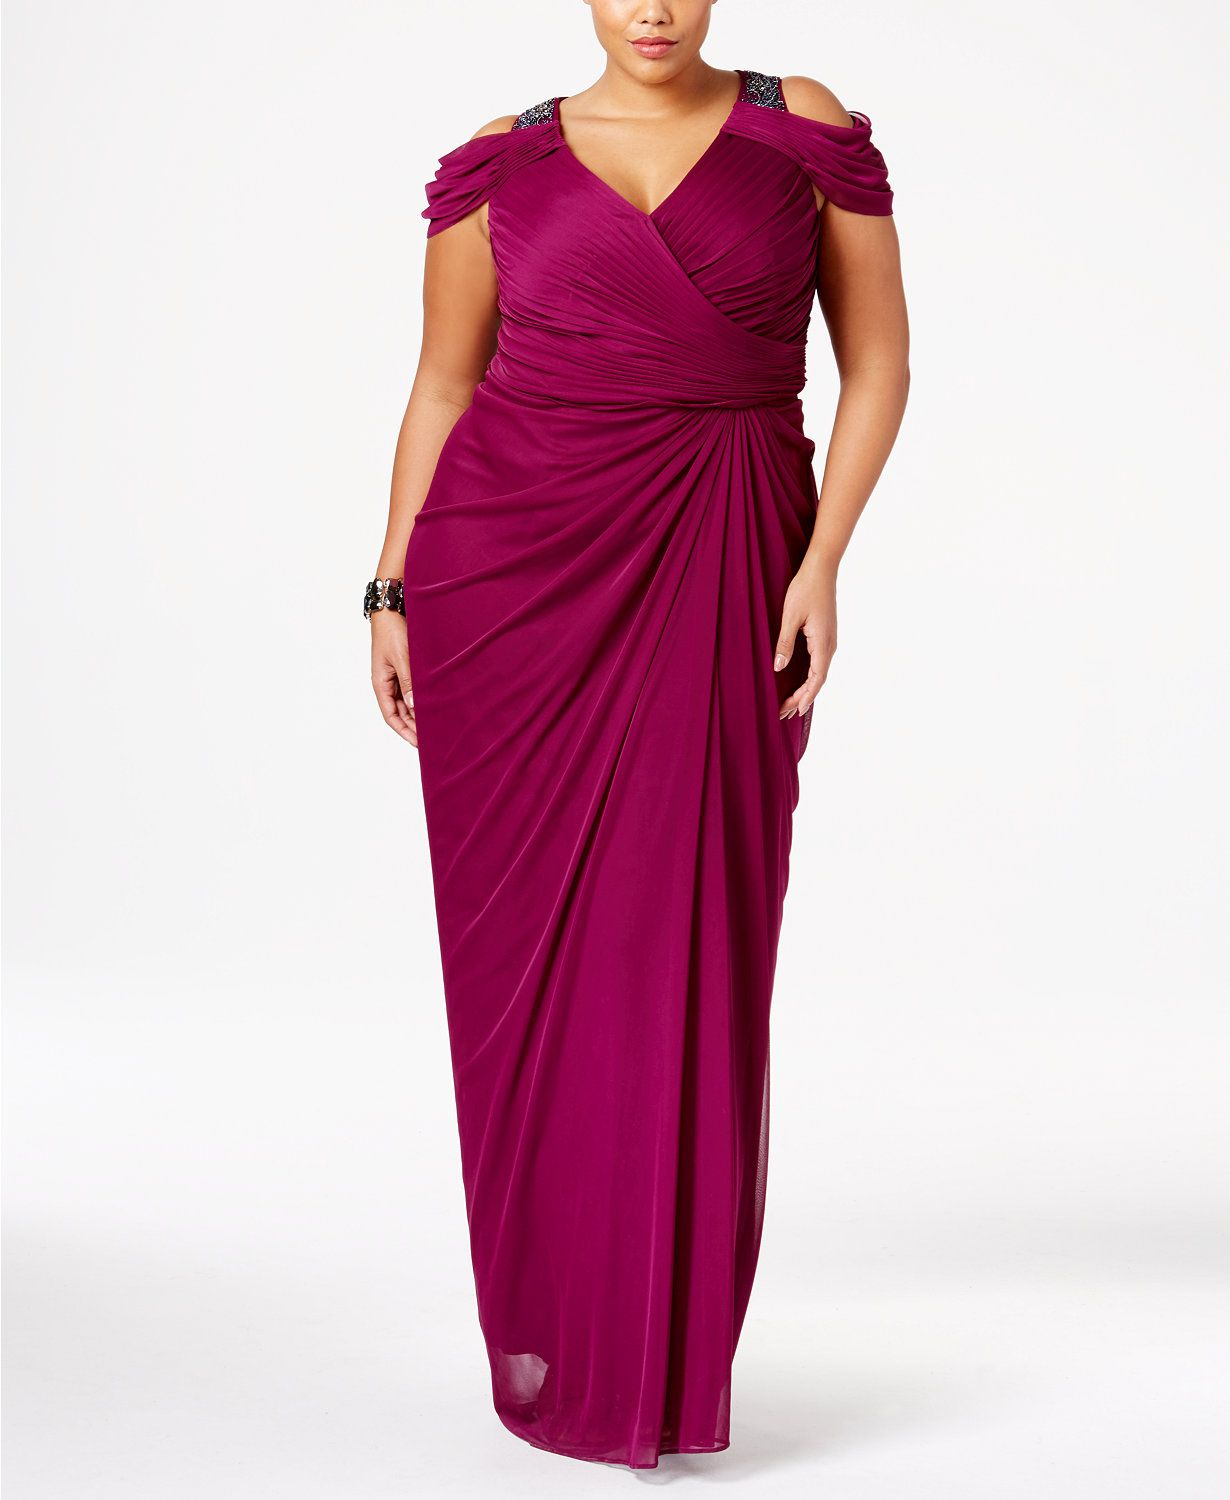 Adrianna Papell Plus Size Beaded Cold-Shoulder Gown | macys ...